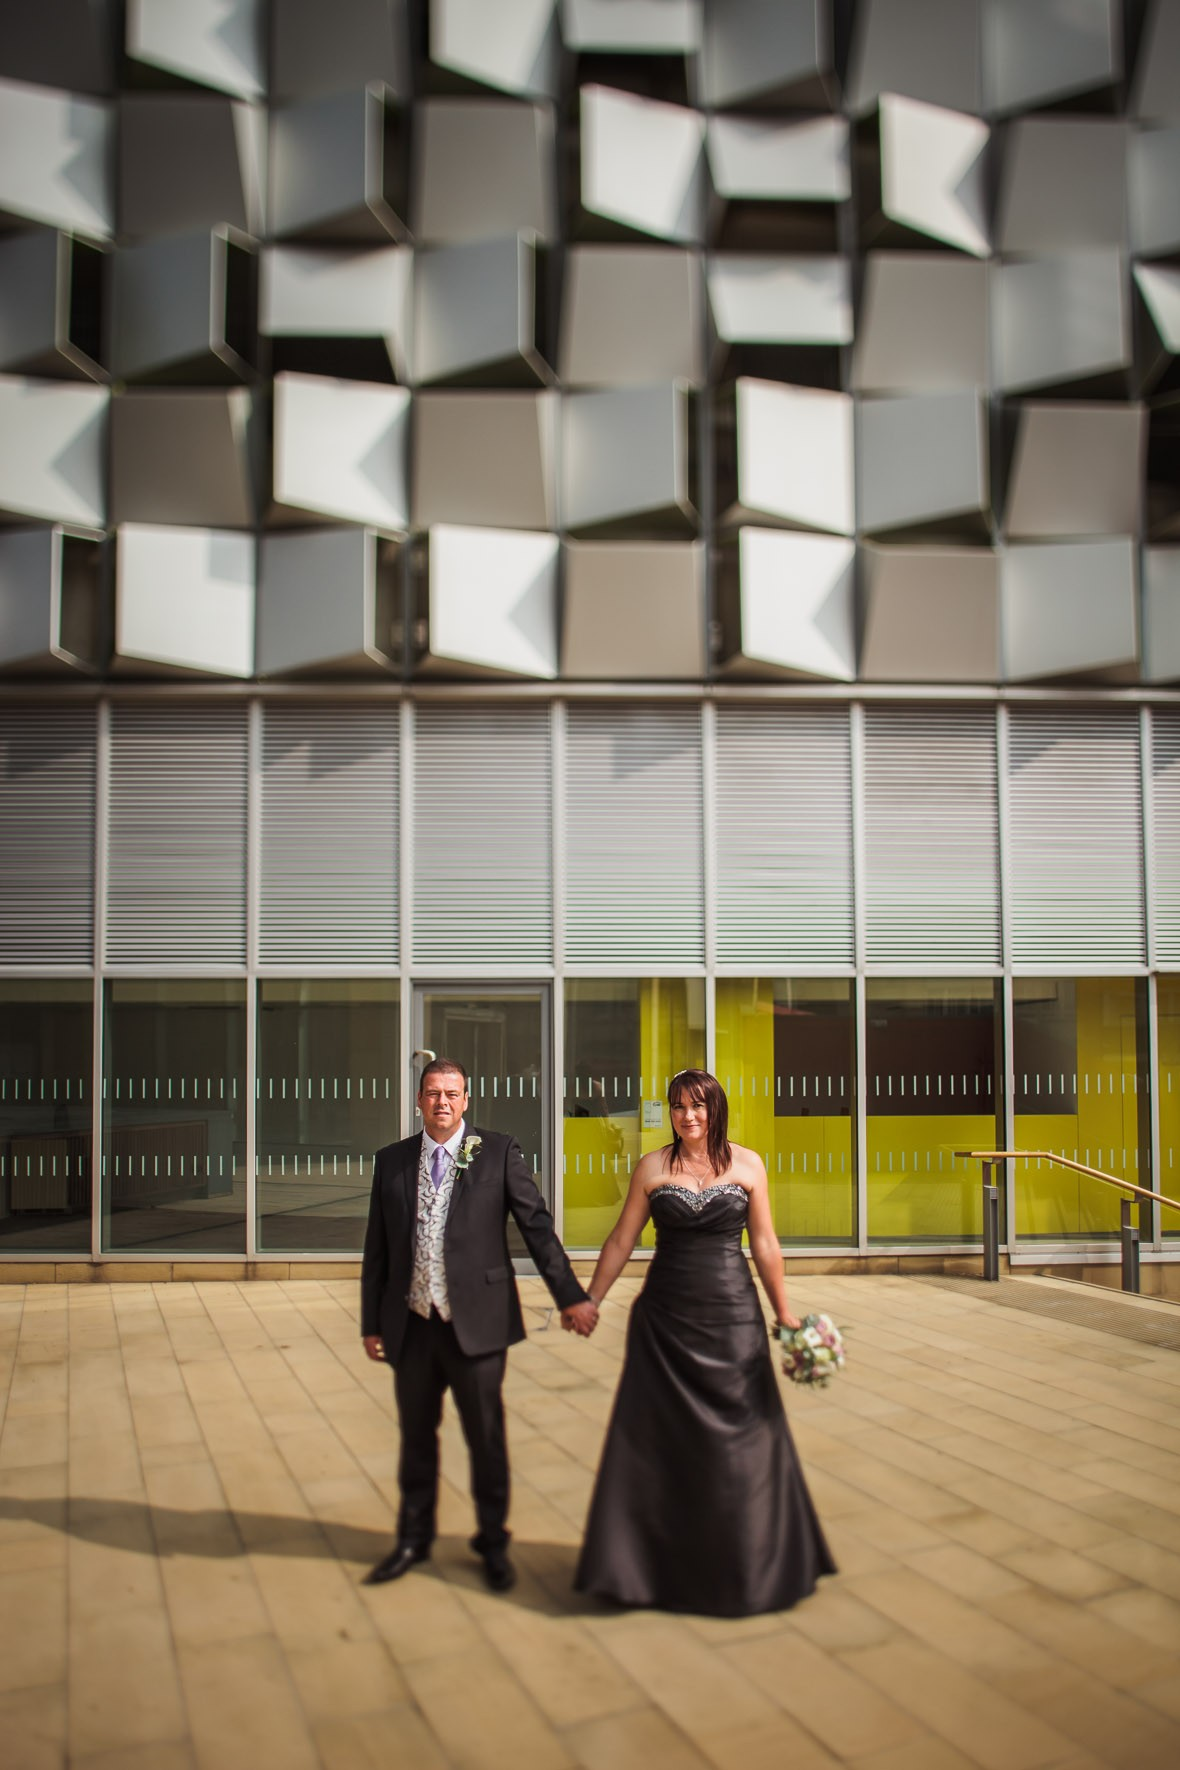 338-2-sheffield-wedding-photographer